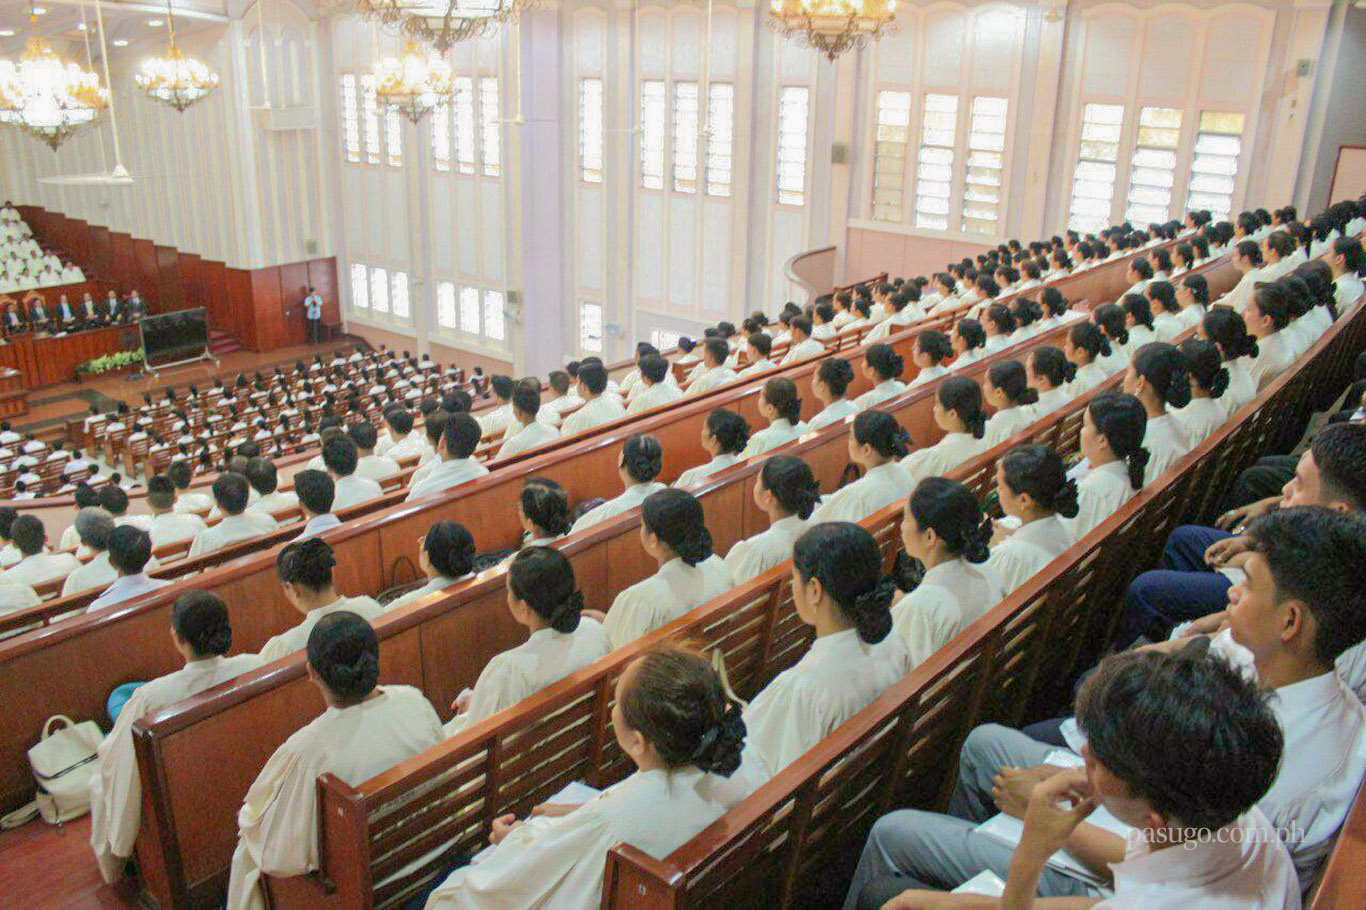 Church officers from the Ecclesiastical District of Bacolod City, Negros Occidental, Philippines convened at the house of worship of the Local Congregation of Bacolod City on May 19, 2019 to hear God's counsel.